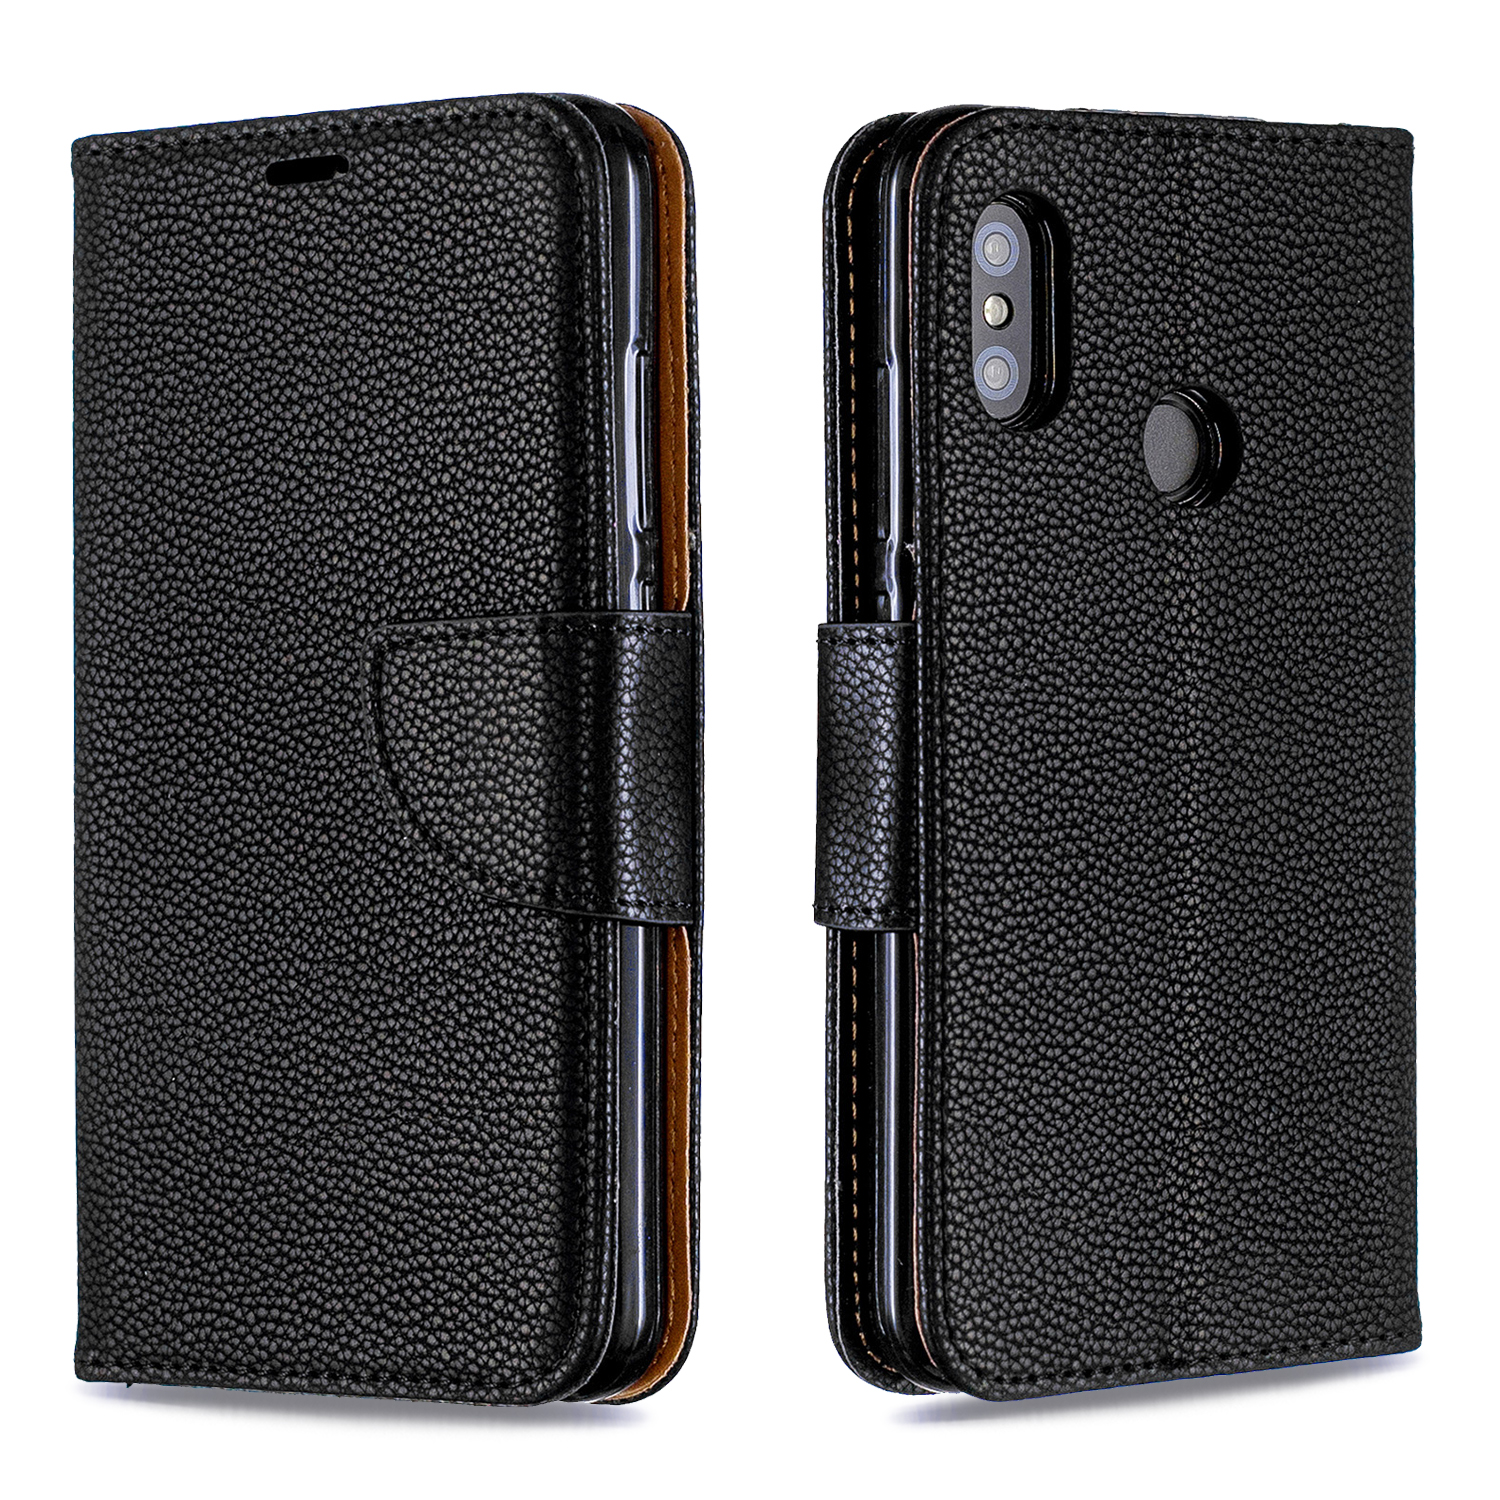 HUANGTAOLI PU Leather Flip Wallet Cover Case For Xiaomi Redmi 6 7 Redmi 6A 6 Pro Redmi Note 7 Phone Bag Case Mobile Phone Case in Wallet Cases from Cellphones Telecommunications